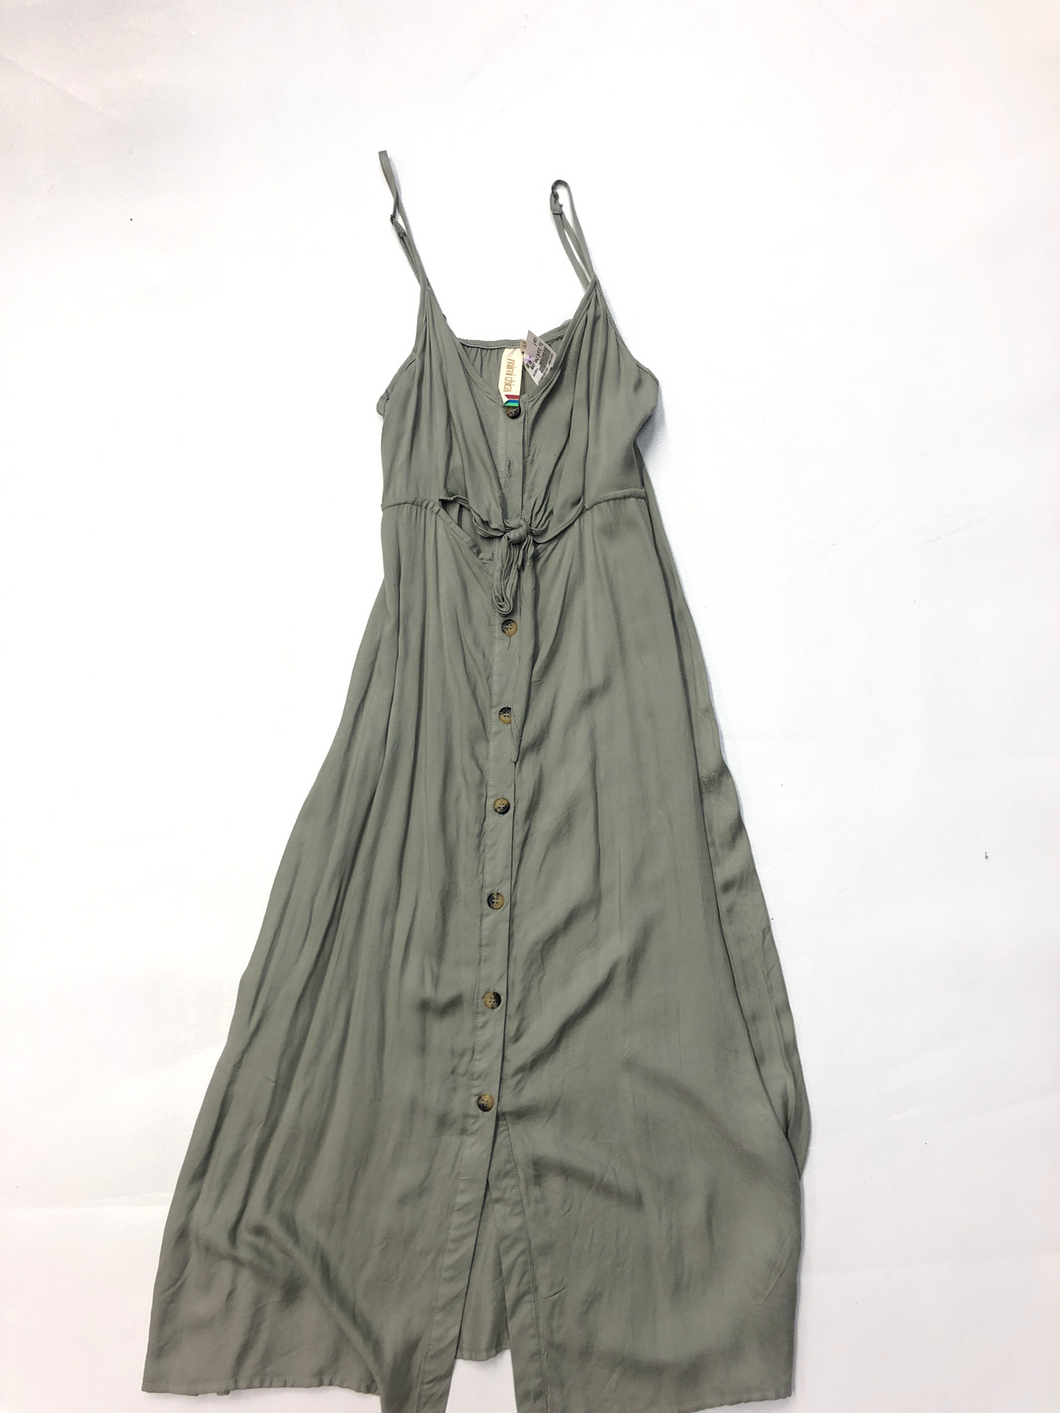 Mimi Chica Maxi Dress Size Medium